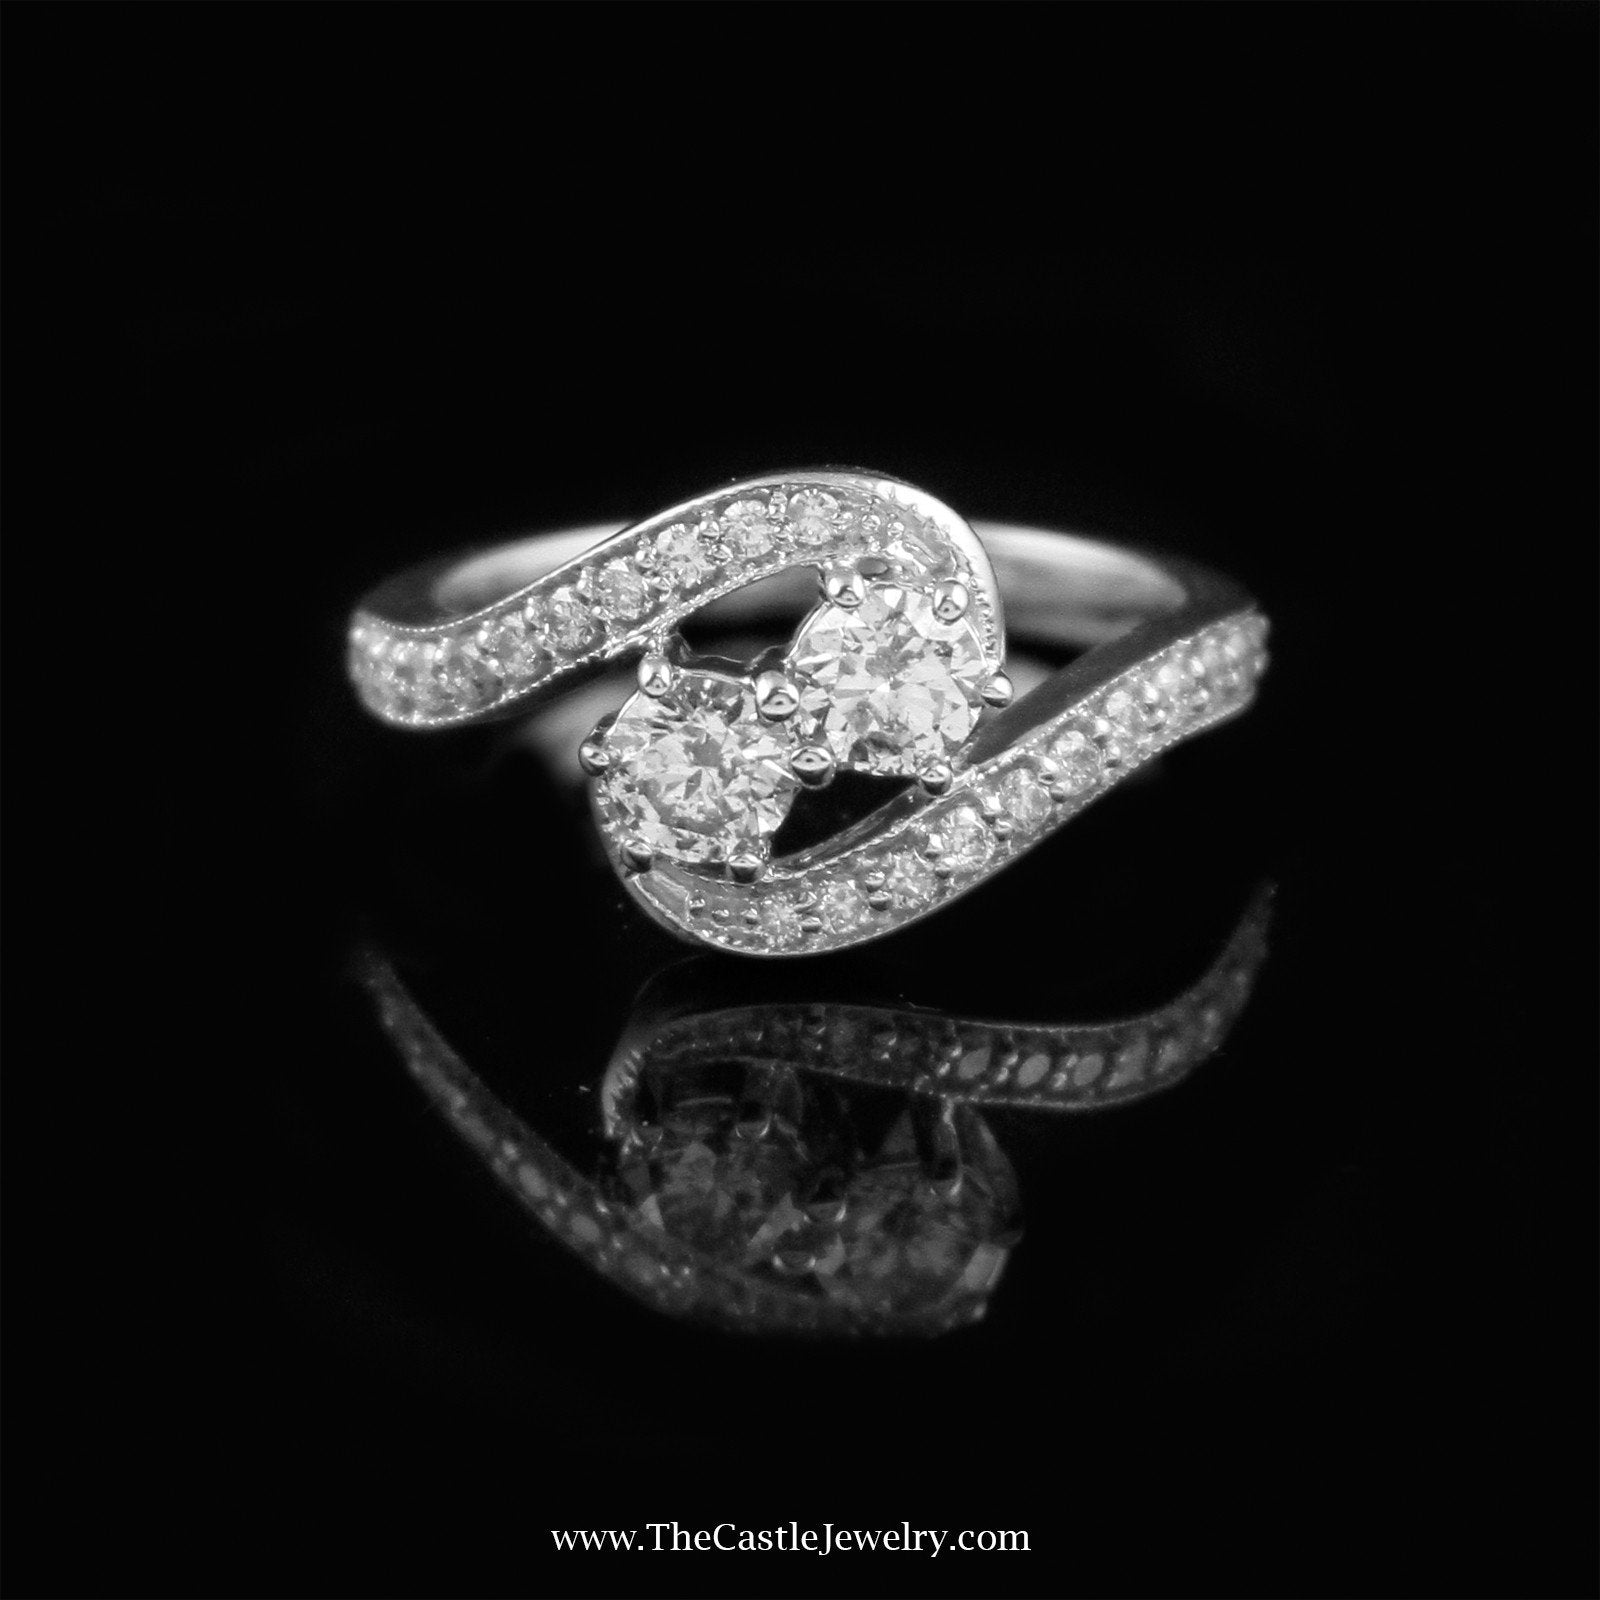 My Love My Best Friend 2 Round 1cttw Diamond Ring in 14K White Gold-0